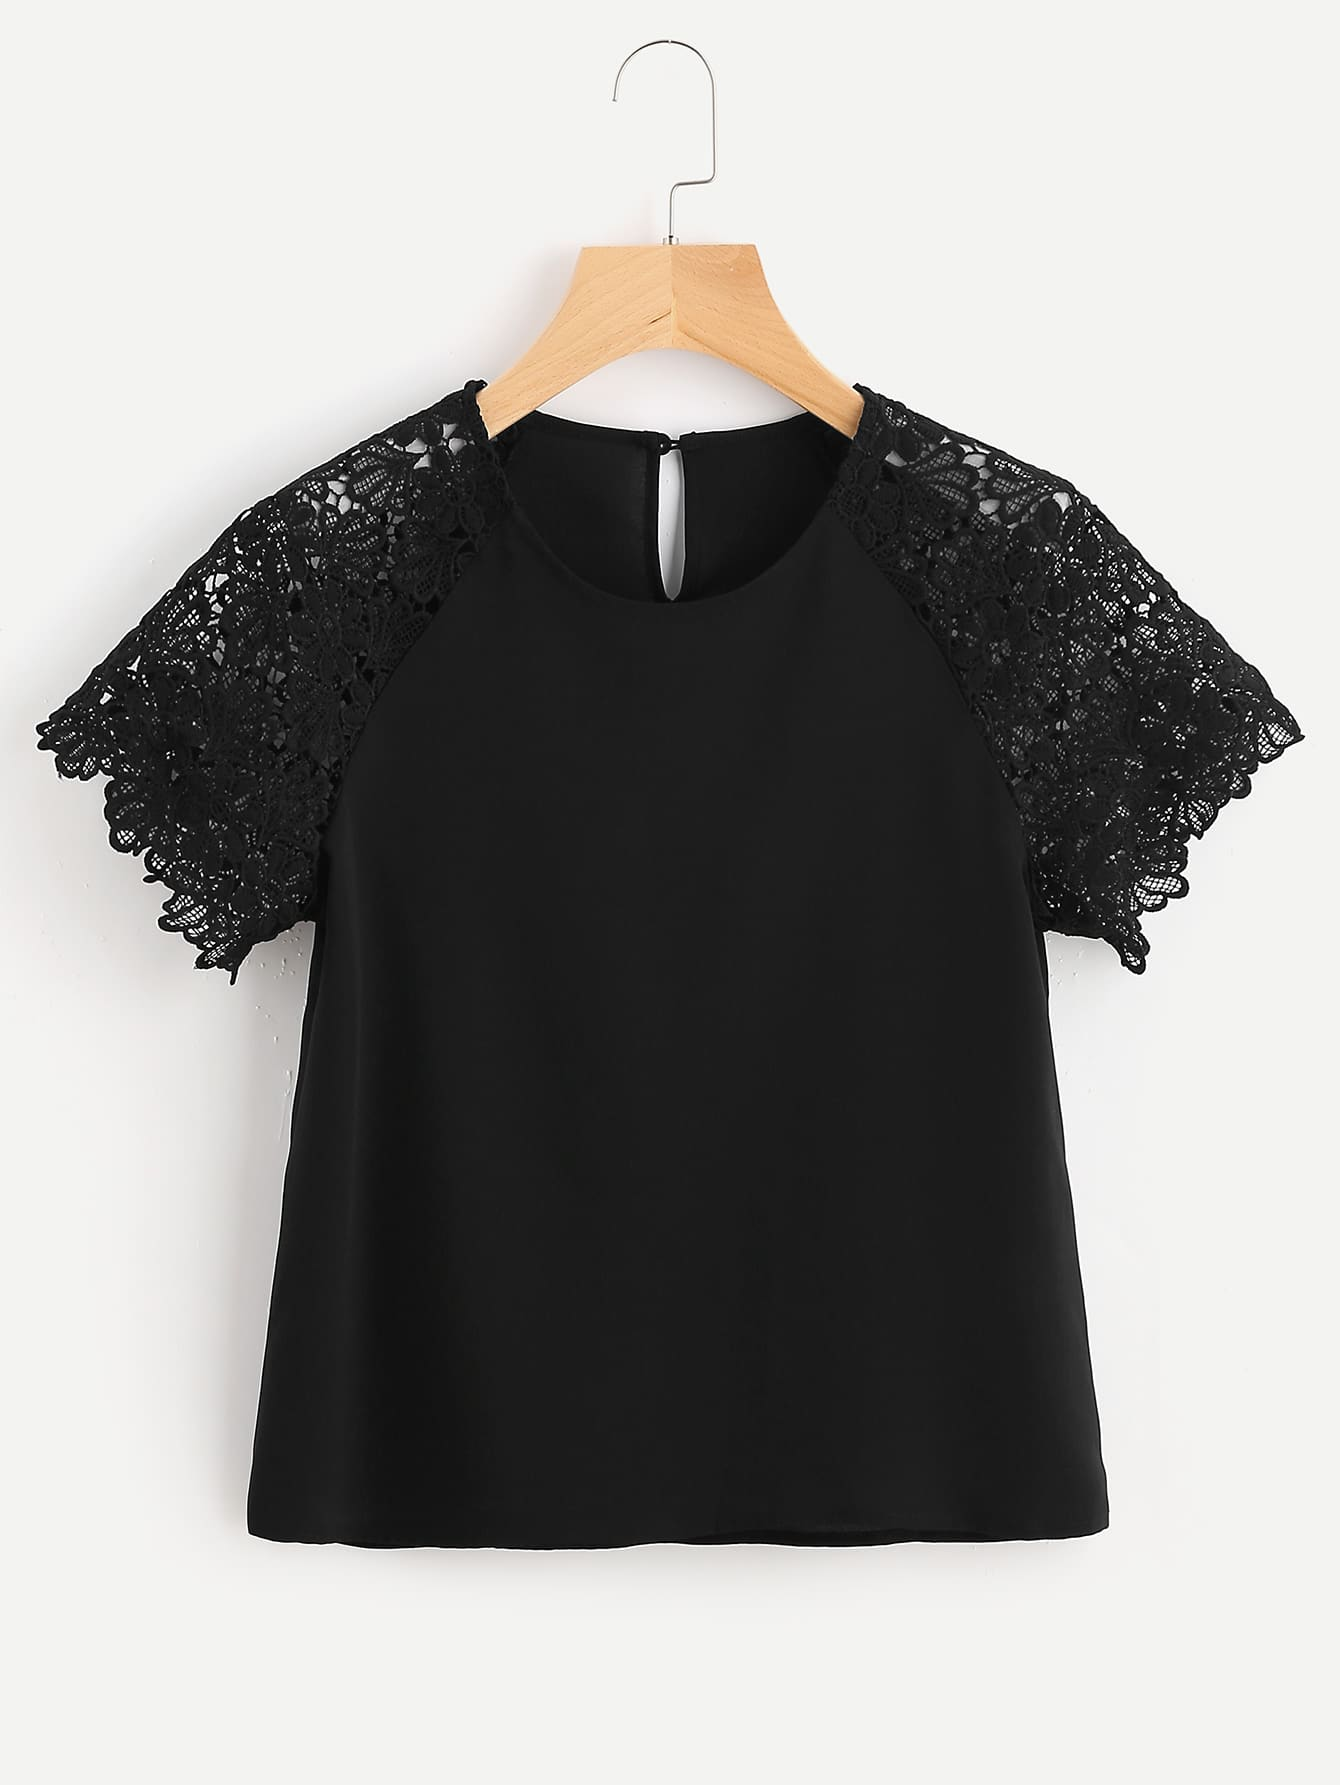 Buttoned Keyhole Back Floral Lace Raglan Sleeve Top lace yoke buttoned back top